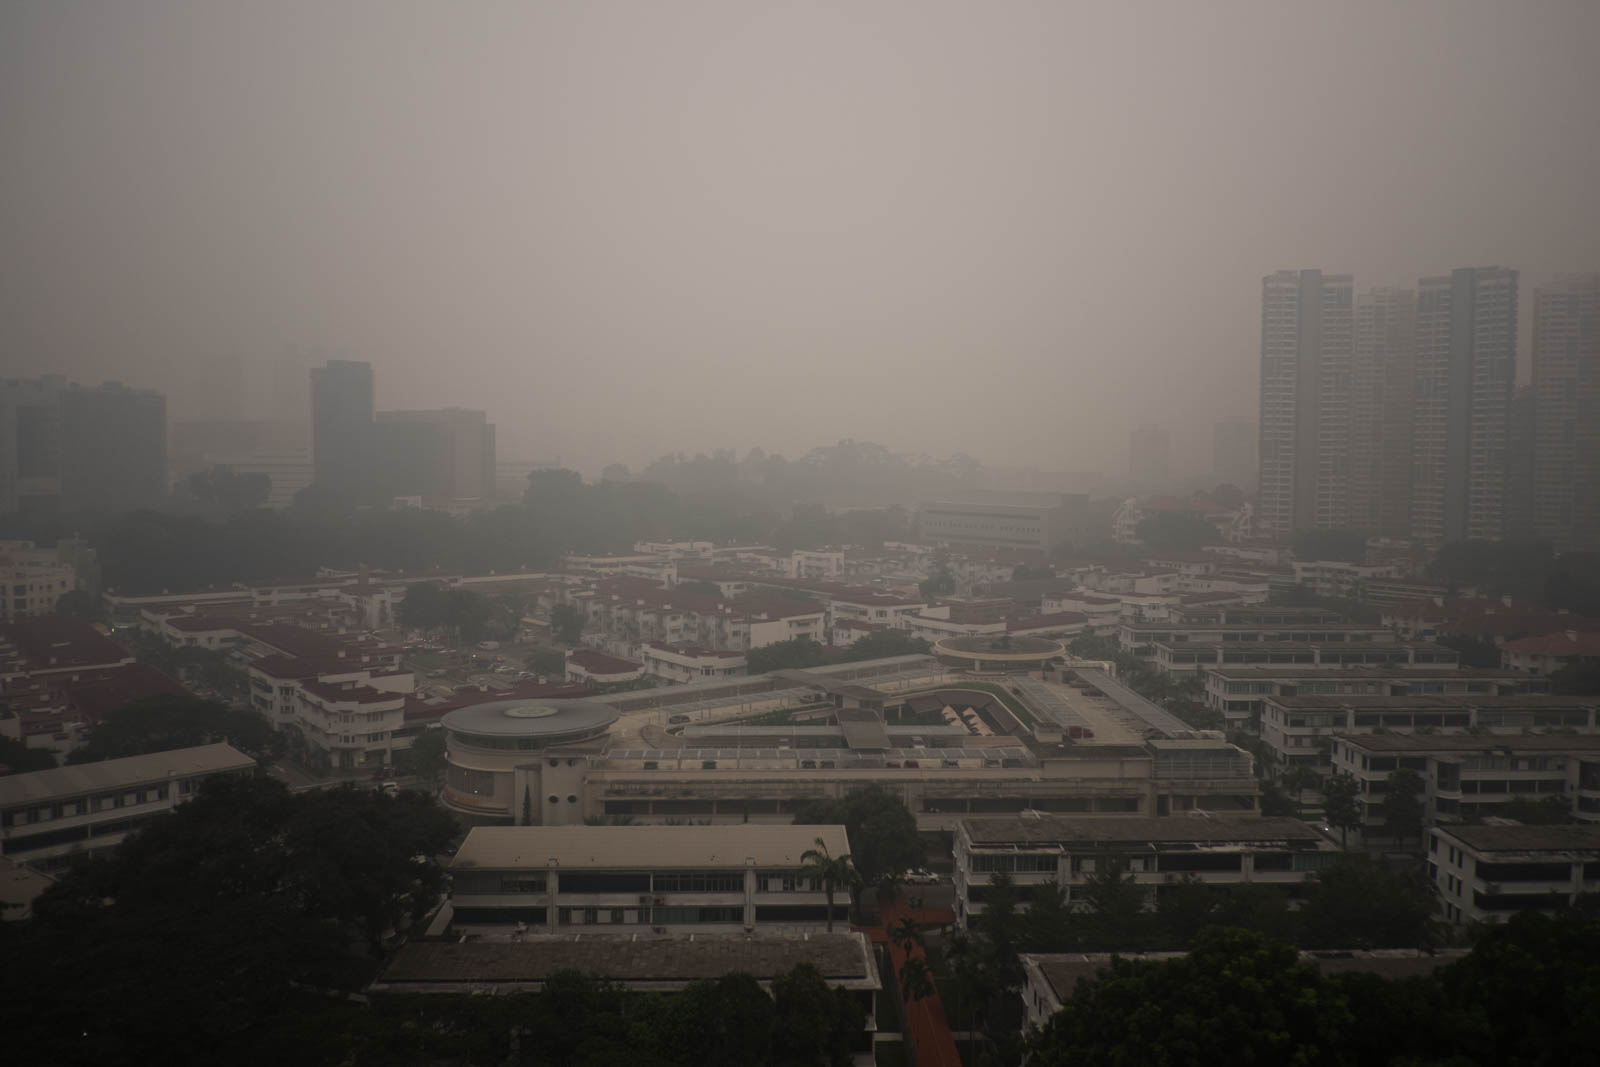 Smoke from fires in Sumatra blankets the Tiong Bahru area of Singapore in September 2015. Source: Charles EYES PiX/Flickr